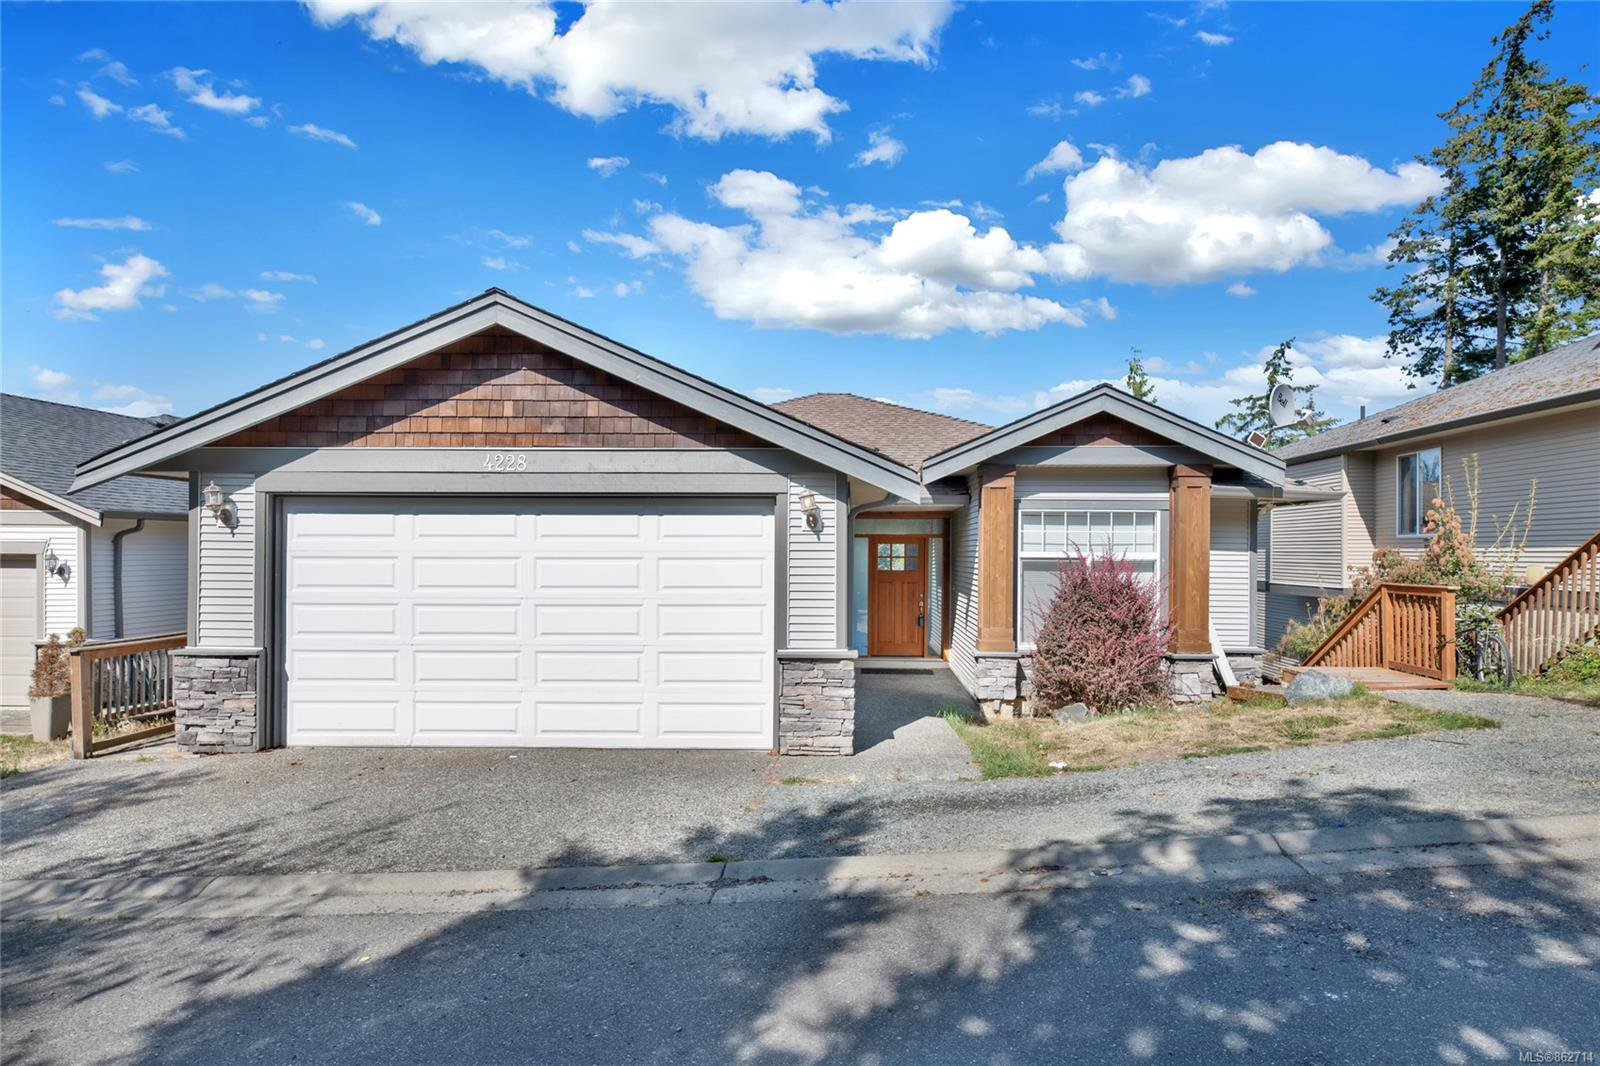 Main Photo: 4228 Gulfview Dr in : Na North Nanaimo House for sale (Nanaimo)  : MLS®# 862714